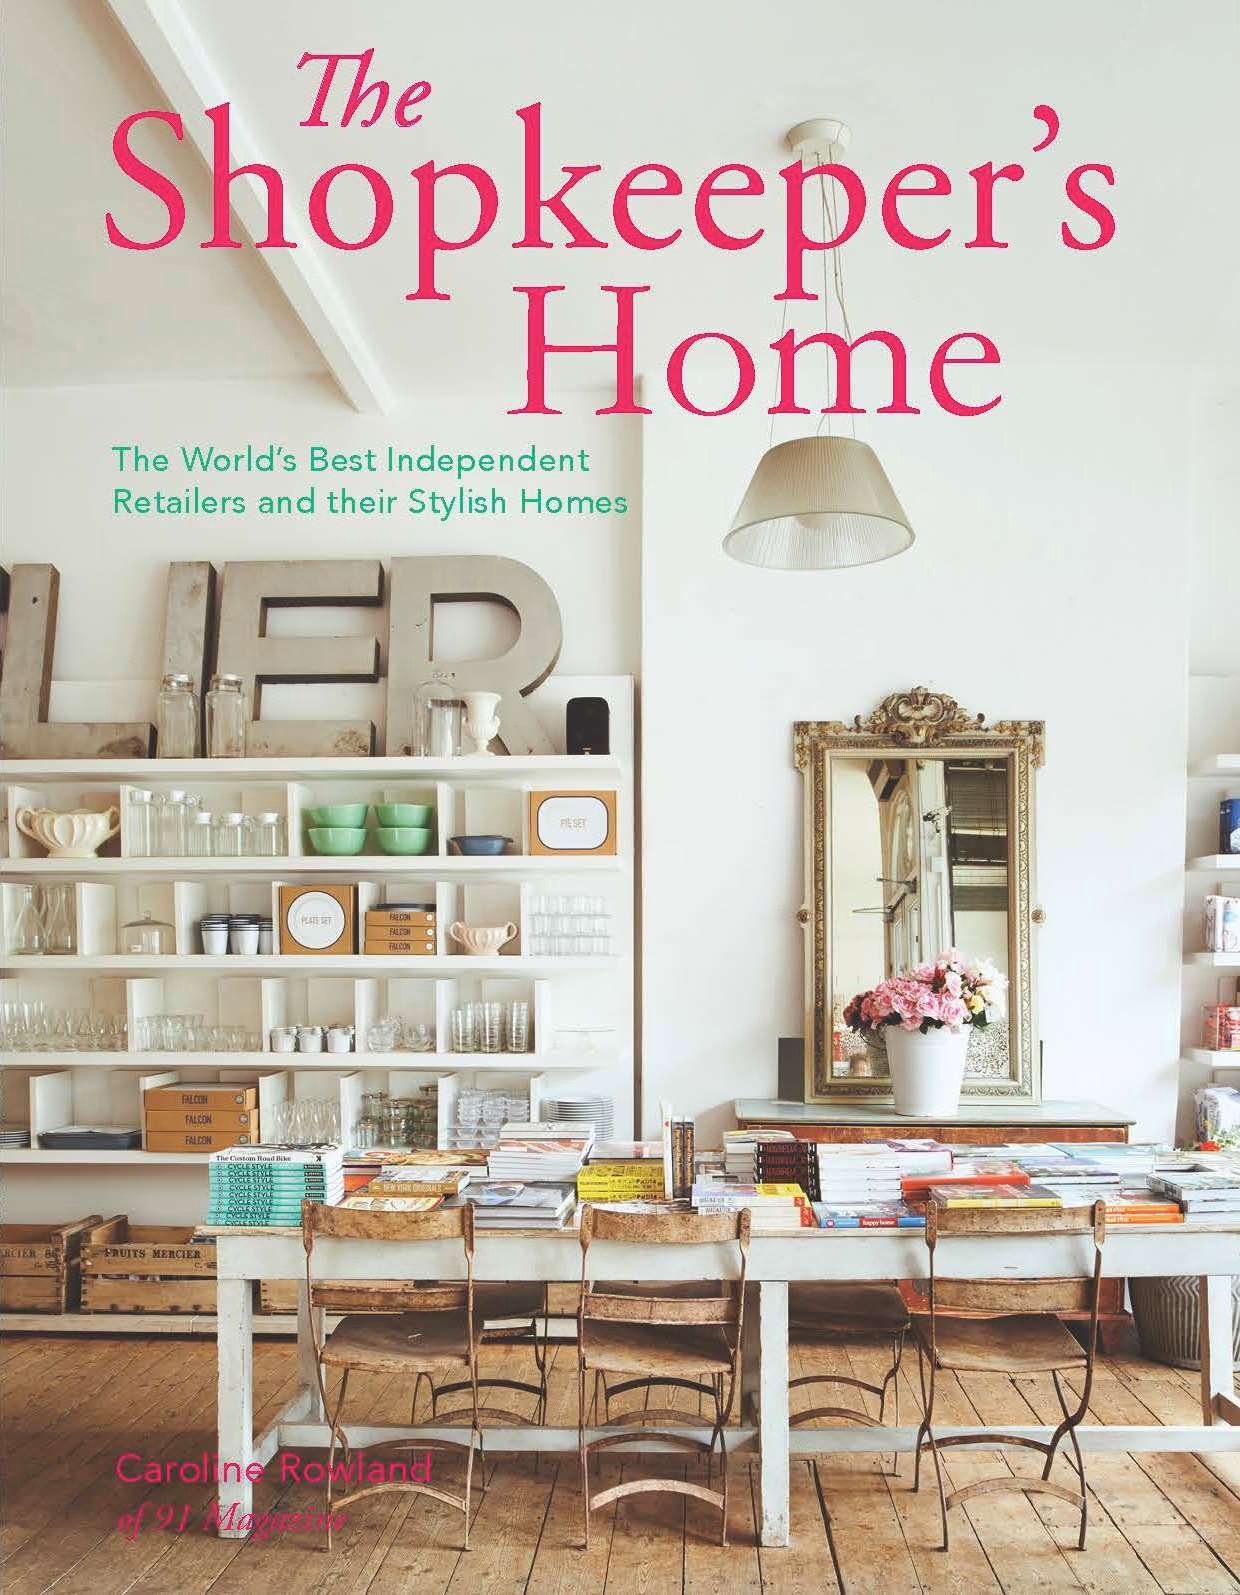 The shopkeepers home the worlds best independent retailers and their stylish homes caroline rowland 9781909342903 amazon com books